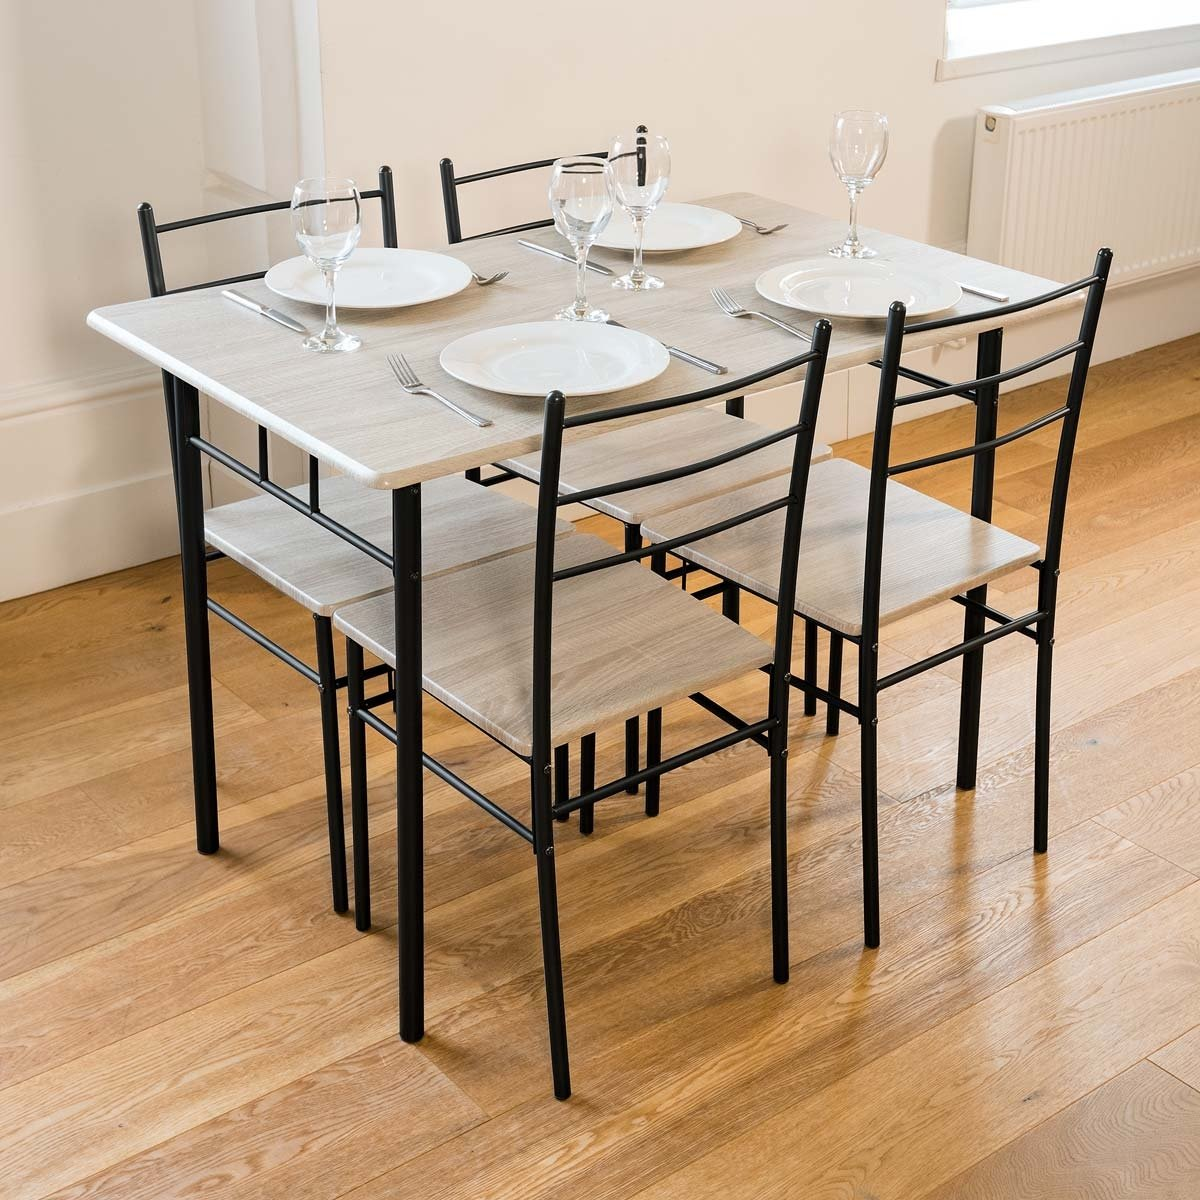 Small Wood Table And Chairs: Small Grey Wooden Black Metal Dining Table And 4 Chairs